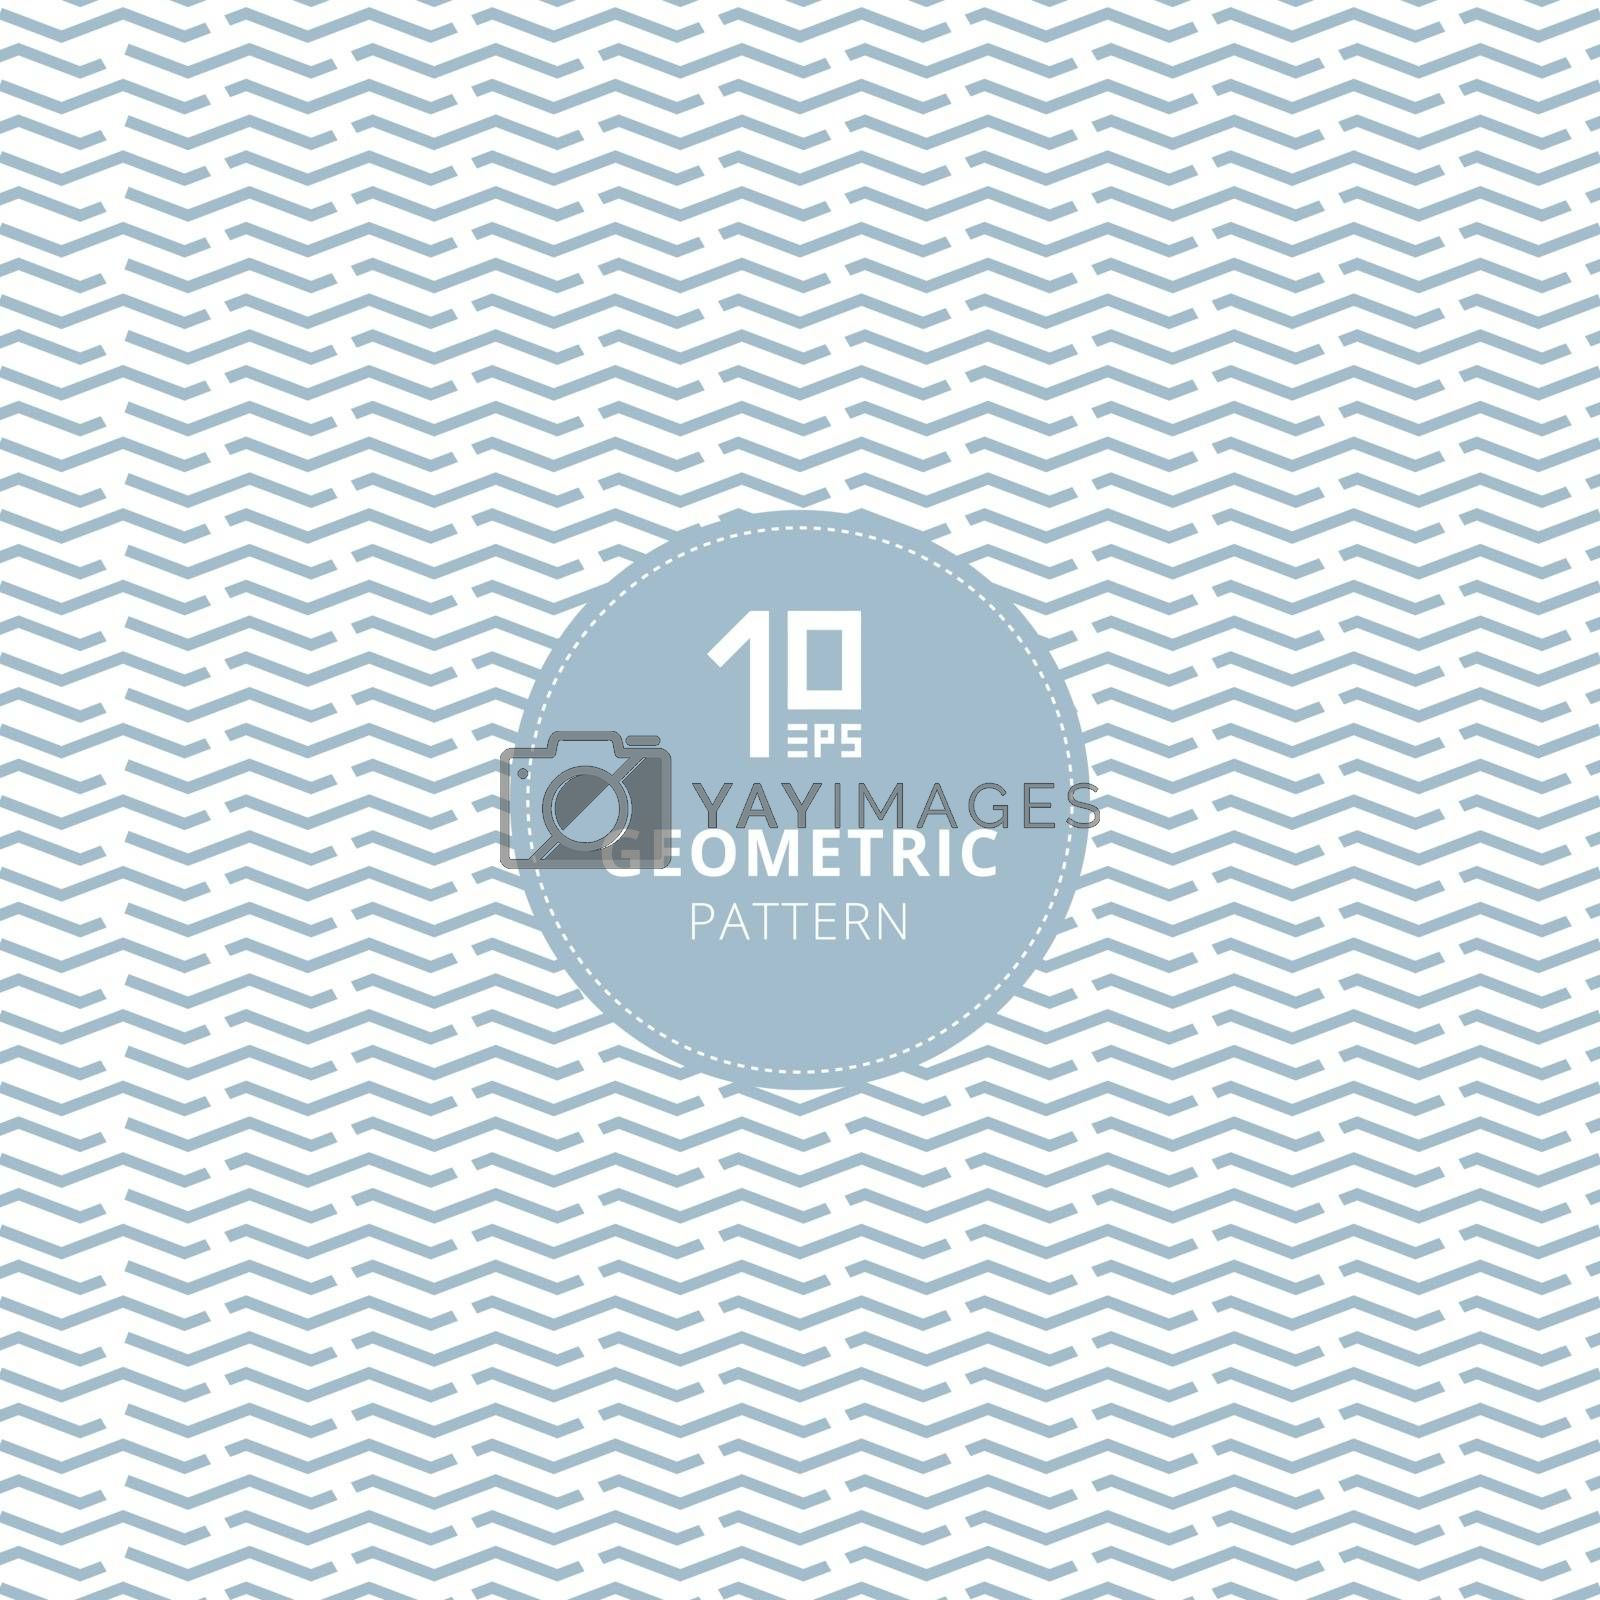 Geometric wave, wavy, chevron pattern pastel color abstract background. Vector illustration